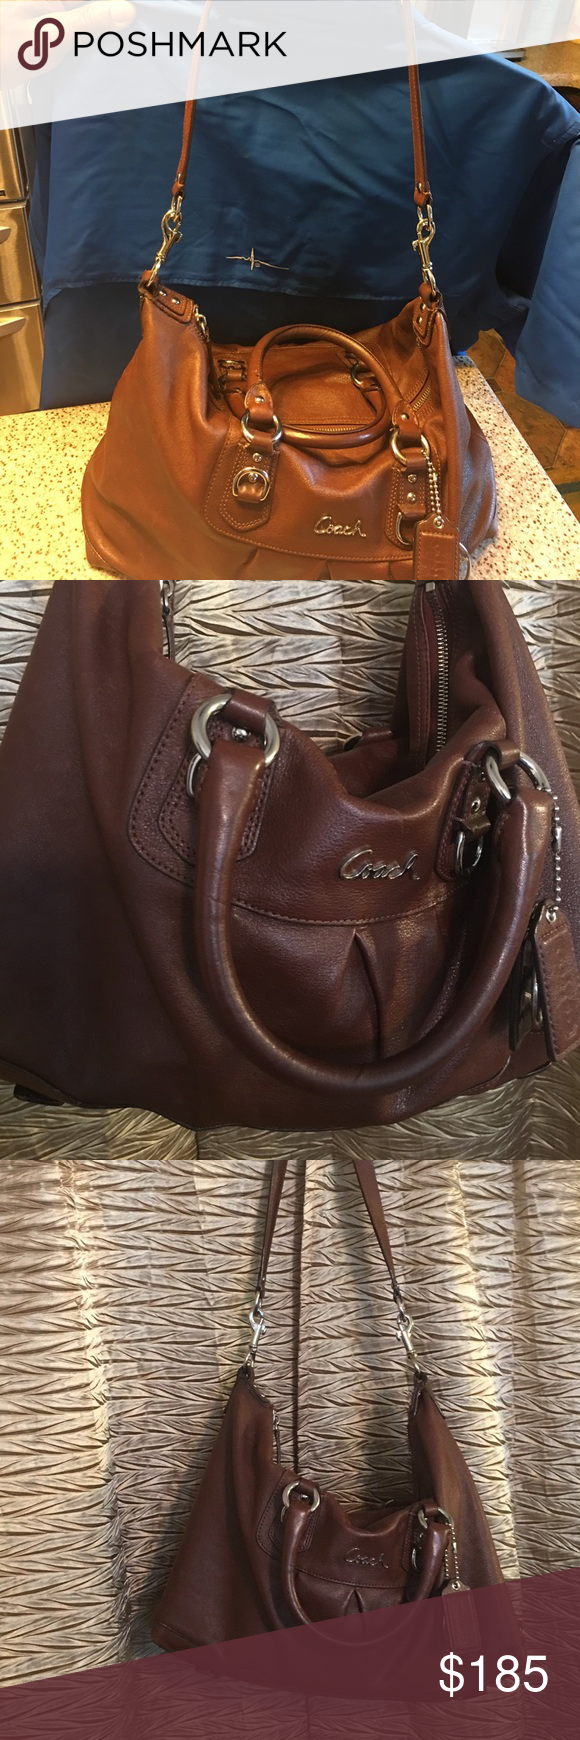 Coach Good soft long strap coach bag brown leather little fading color I'm pulling things out of my closet to shop some more 💕💕great large satchel bag 4inside pocket Coach Bags Satchels